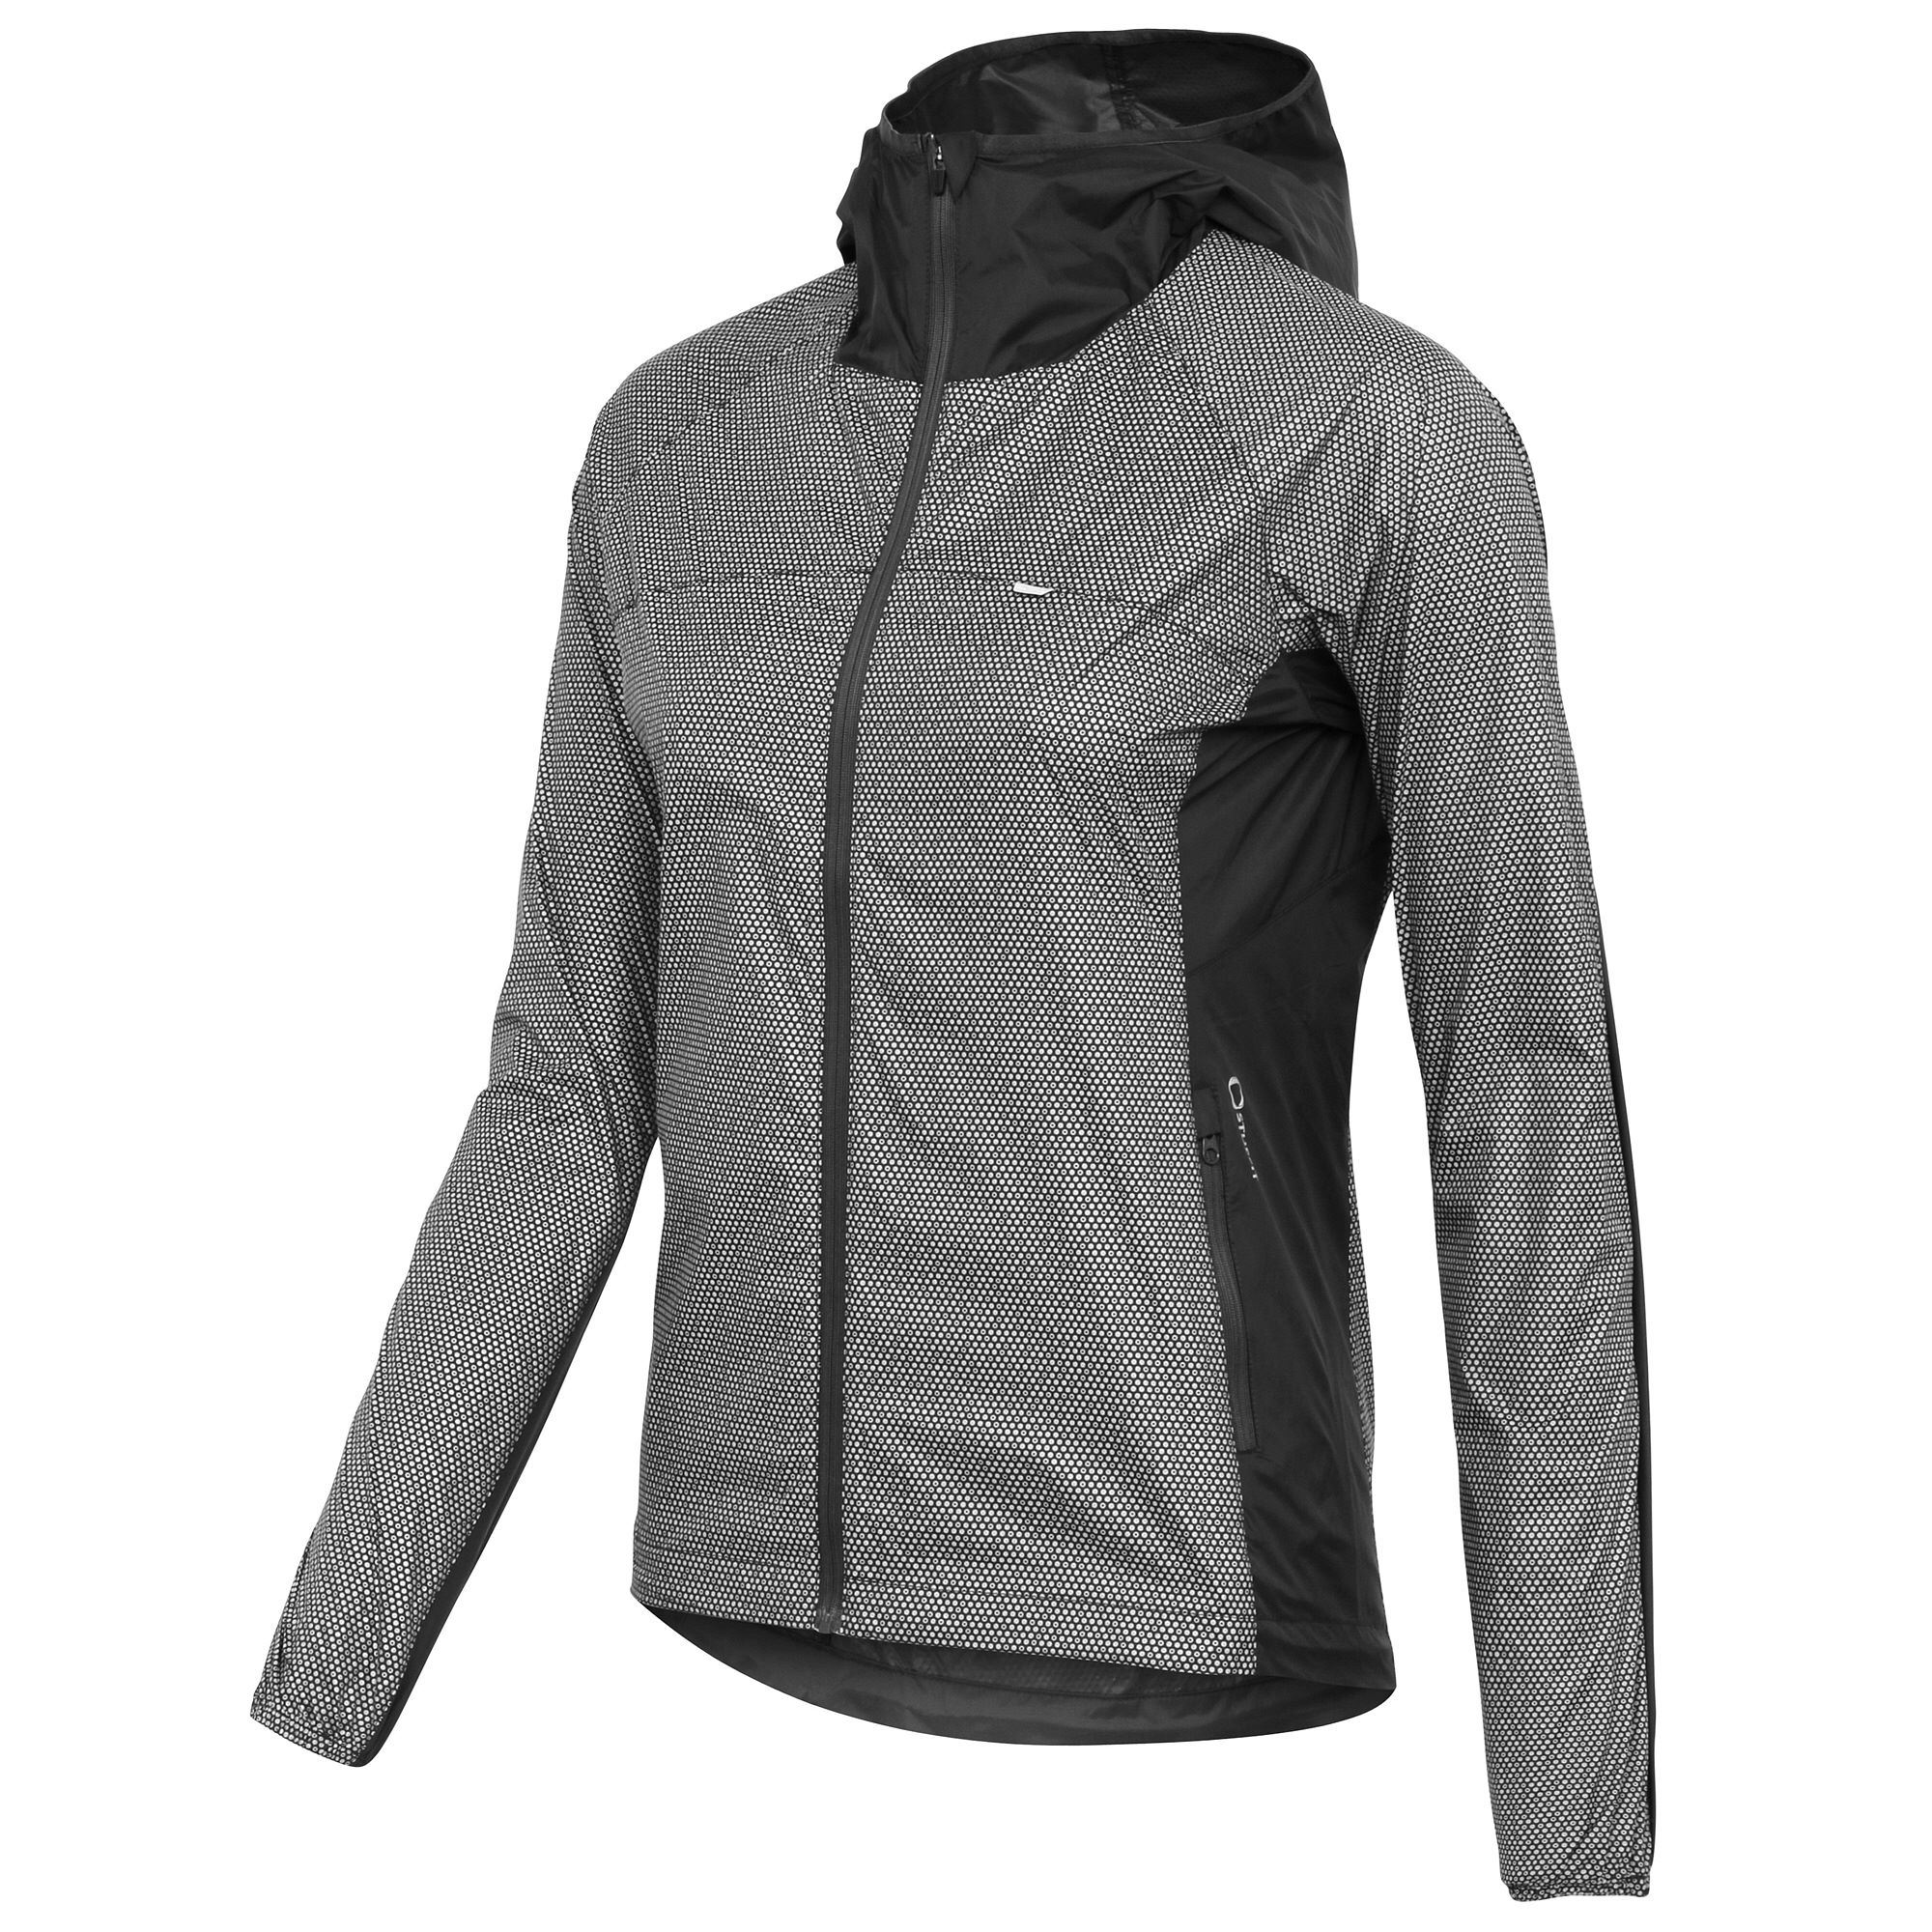 vestes de running coupe vent dhb women 39 s run reflective jacket wiggle france. Black Bedroom Furniture Sets. Home Design Ideas